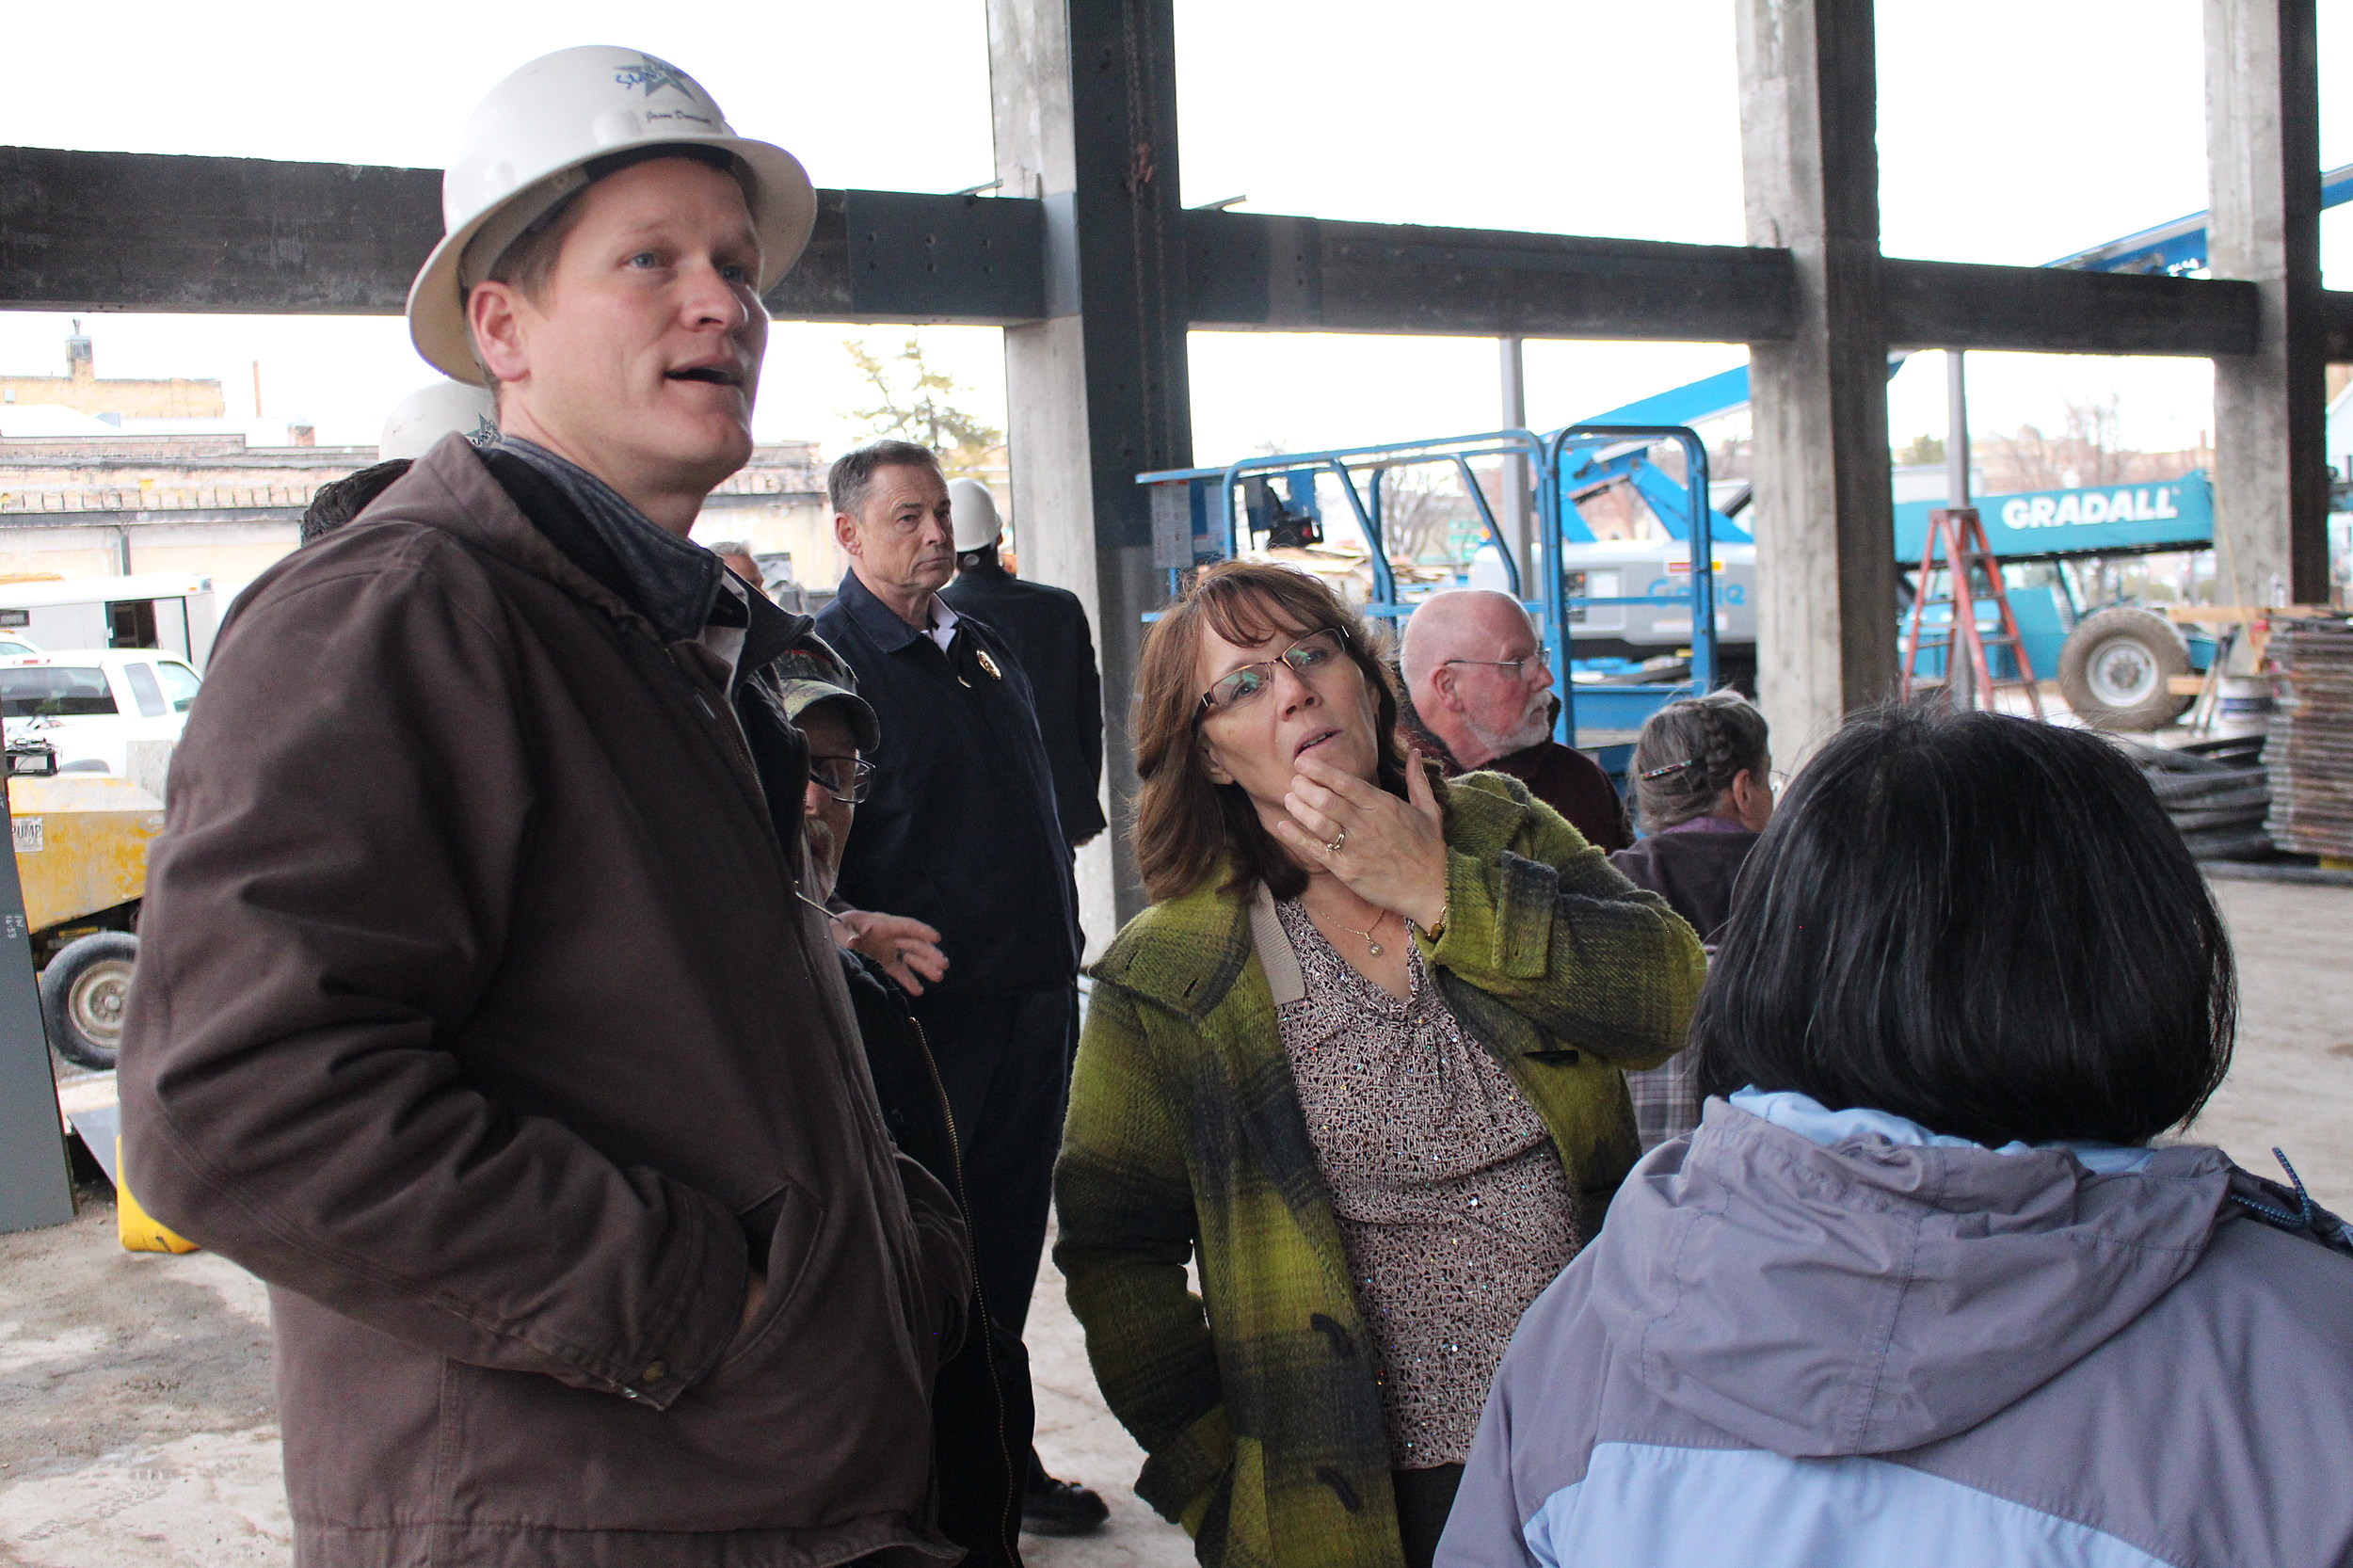 Project Manager Jason Derricott talks with Councilwoman Suzanne Hawkins about the future City Hall during a tour of the site on Monday, Feb. 6, in downtown Twin Falls. (Photo by Andrew Weeks)